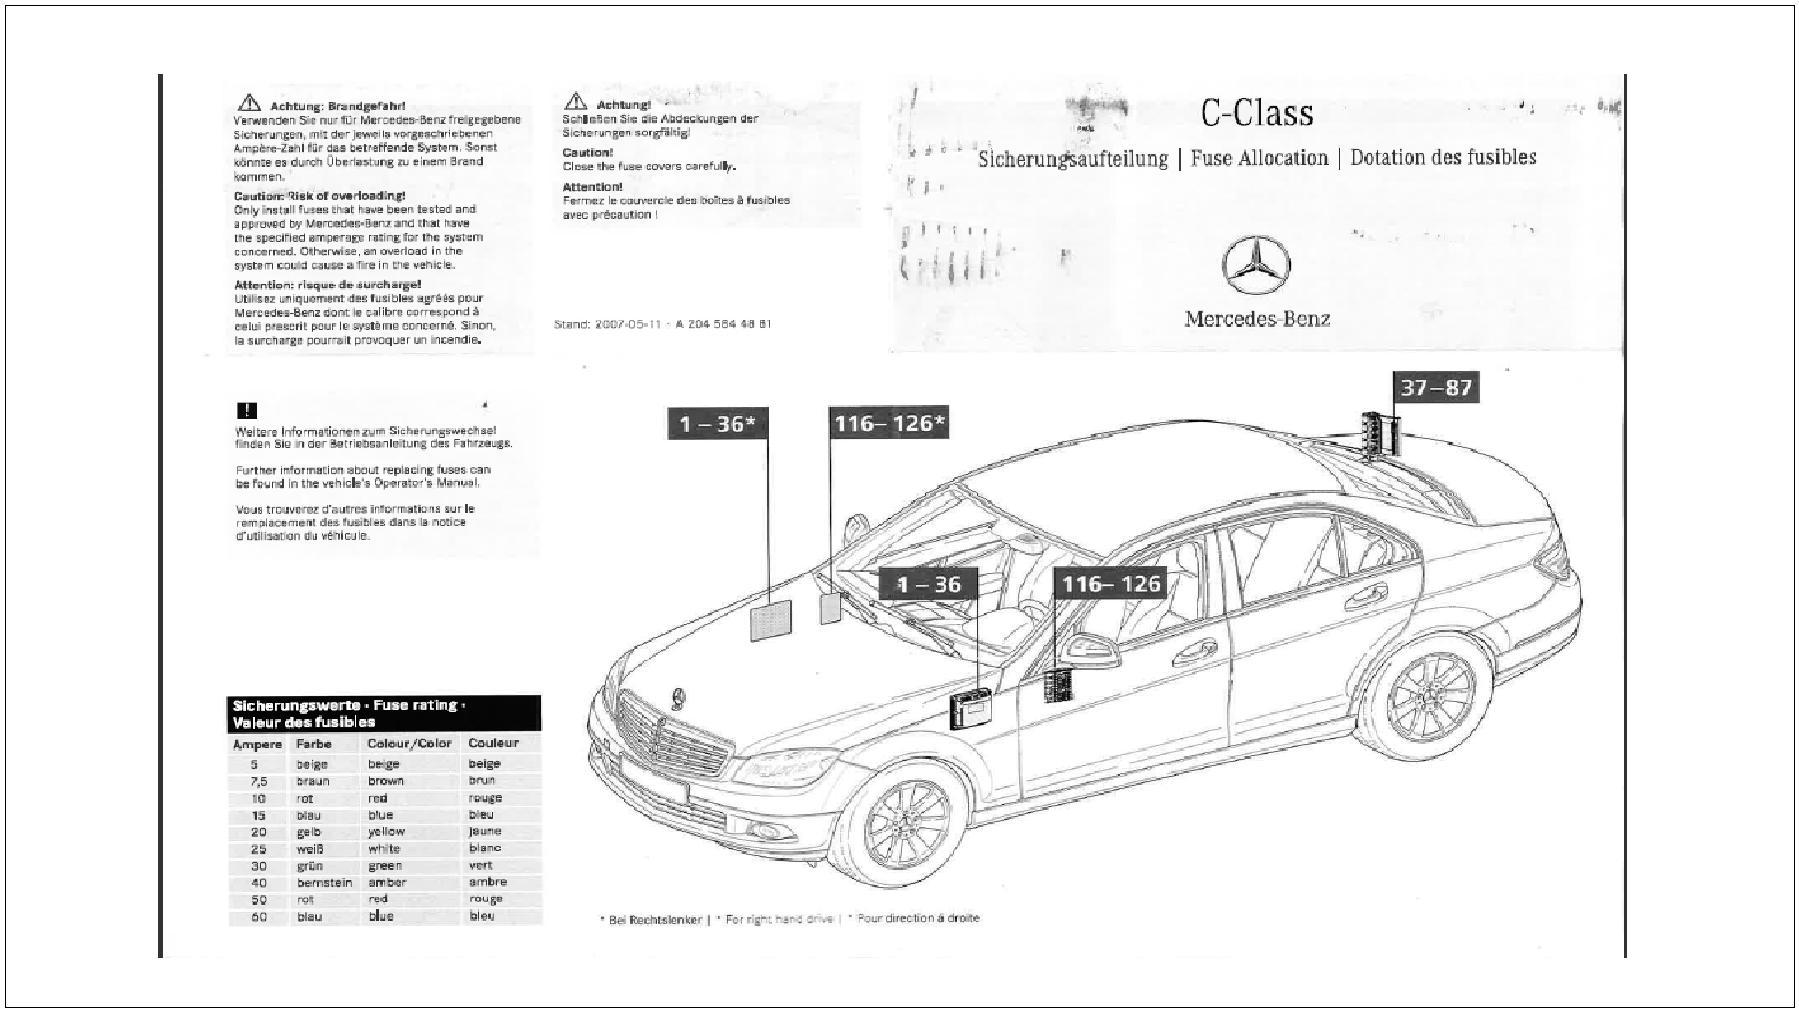 mercedes benz c class w204 fuse diagrams and commonly blown fuses rh mbworld org mercedes c class fuse box location mercedes c class w204 fuse box location